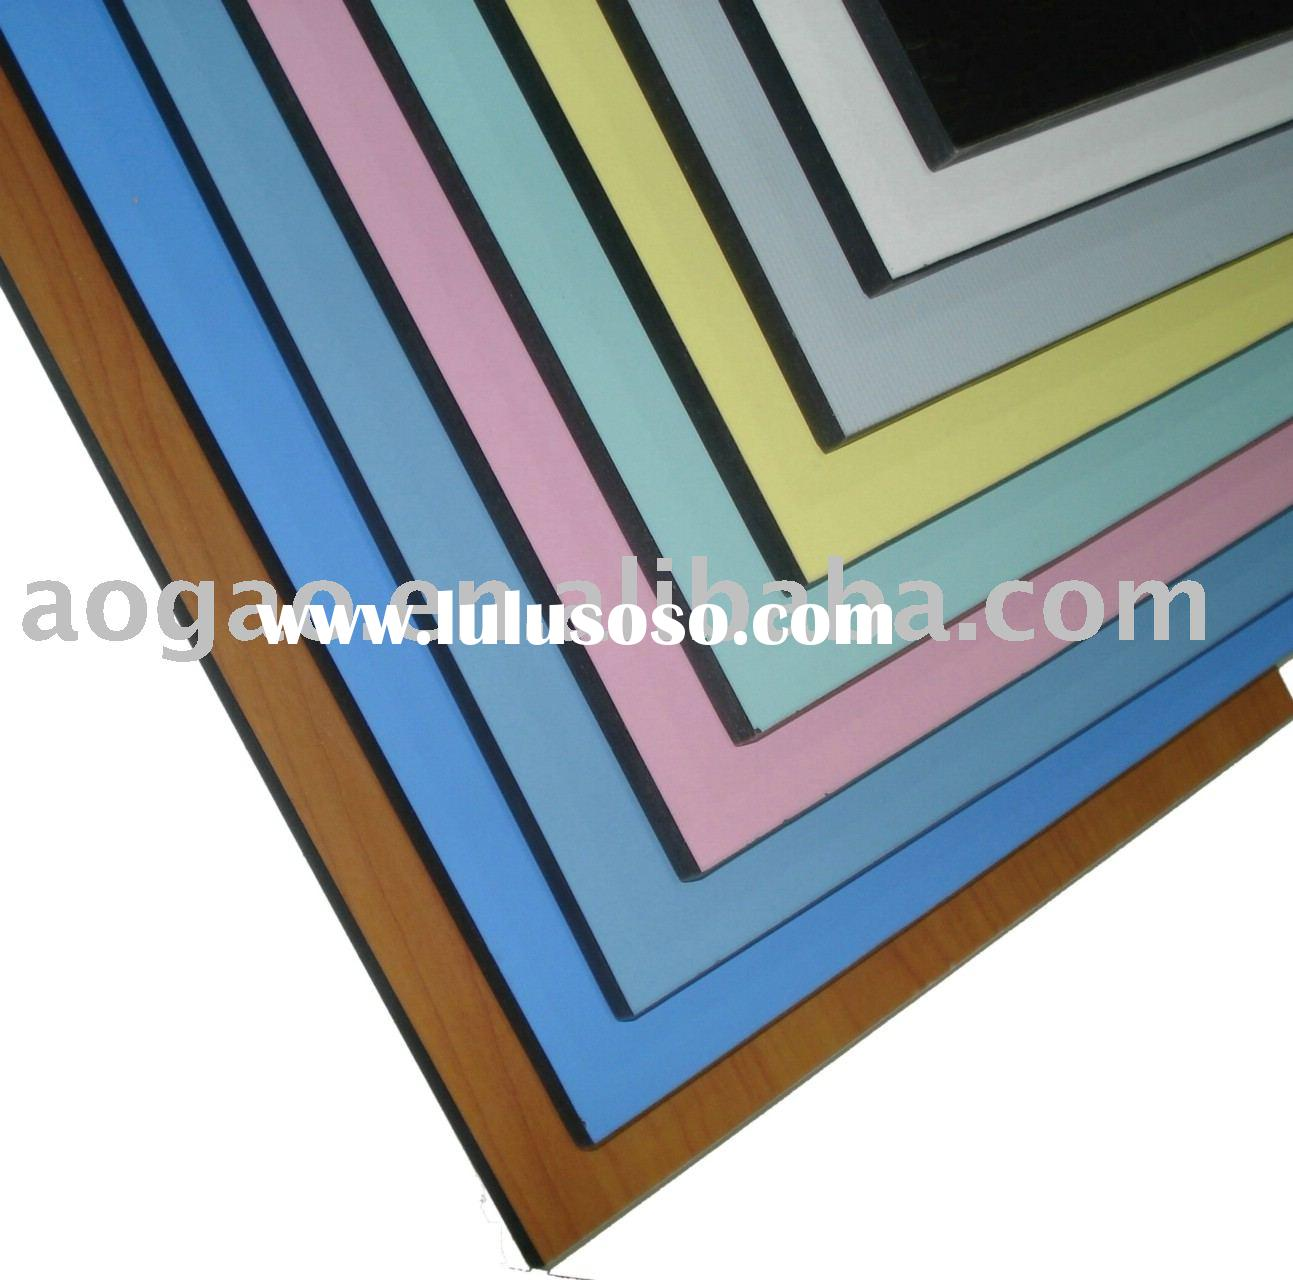 Laminated board manufacturers